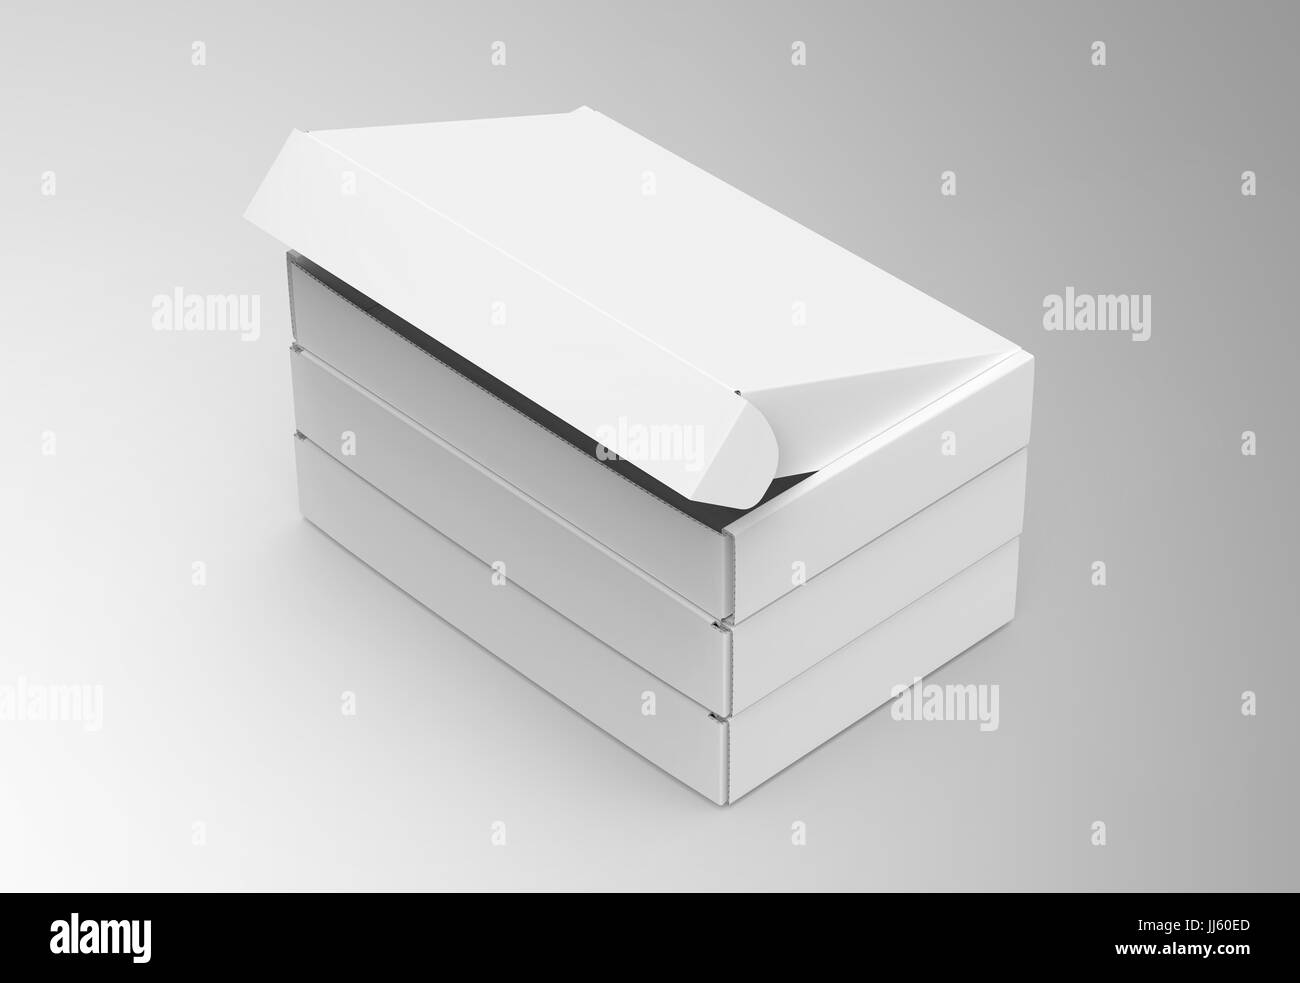 Blank Tuck Top Box Template Stack Of Paper Boxes Mockup Isolated On Light Gray Background Elevated View